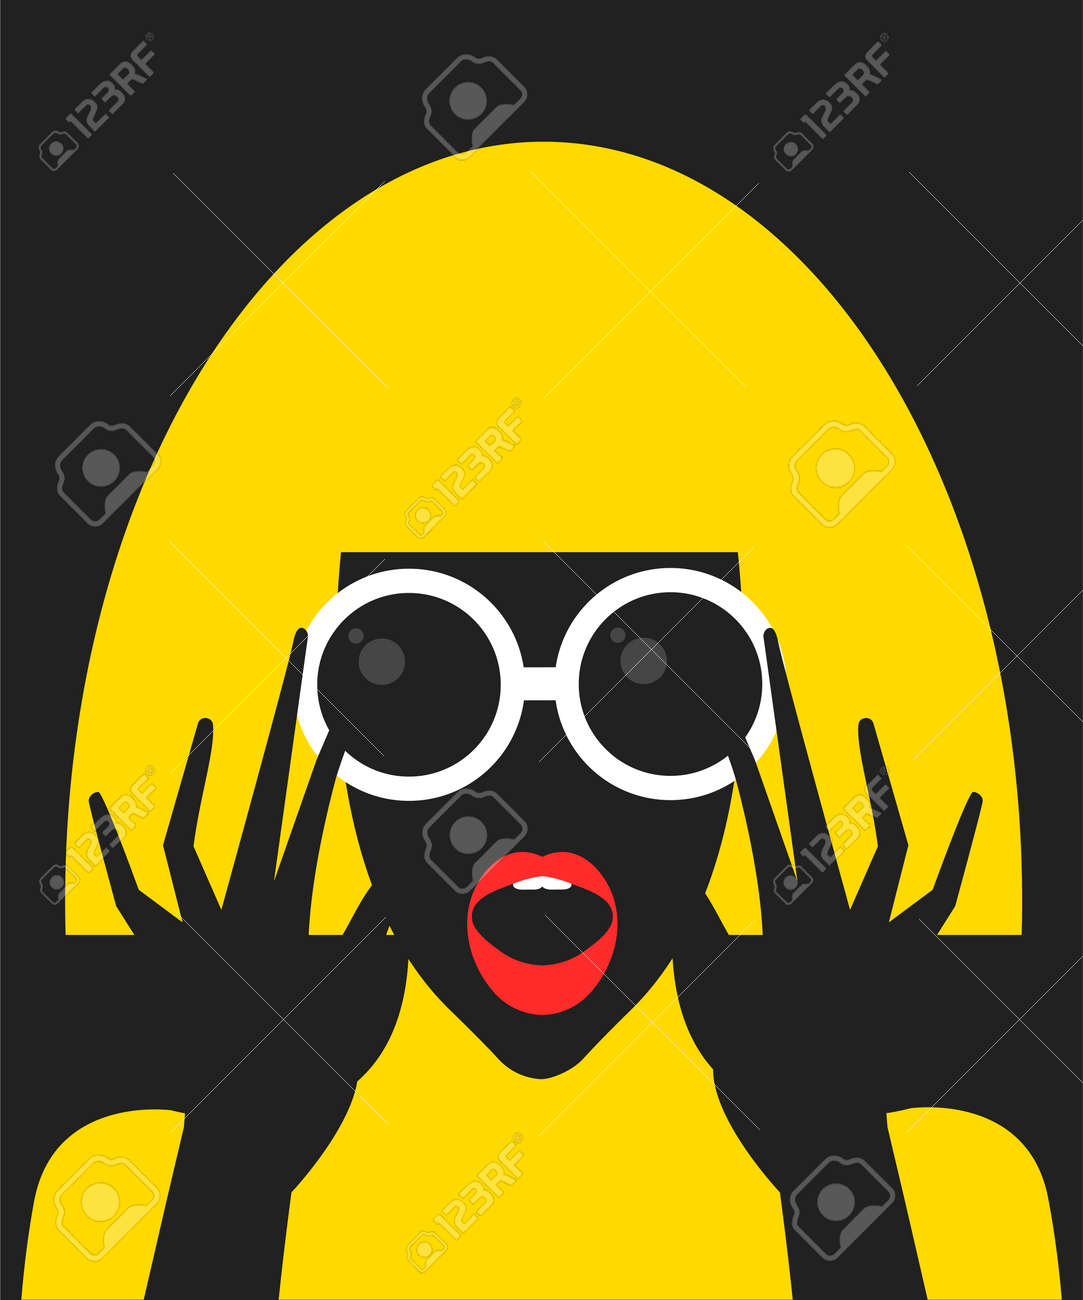 Surprised cartoon girl with sunglasses in flat style - 167305069